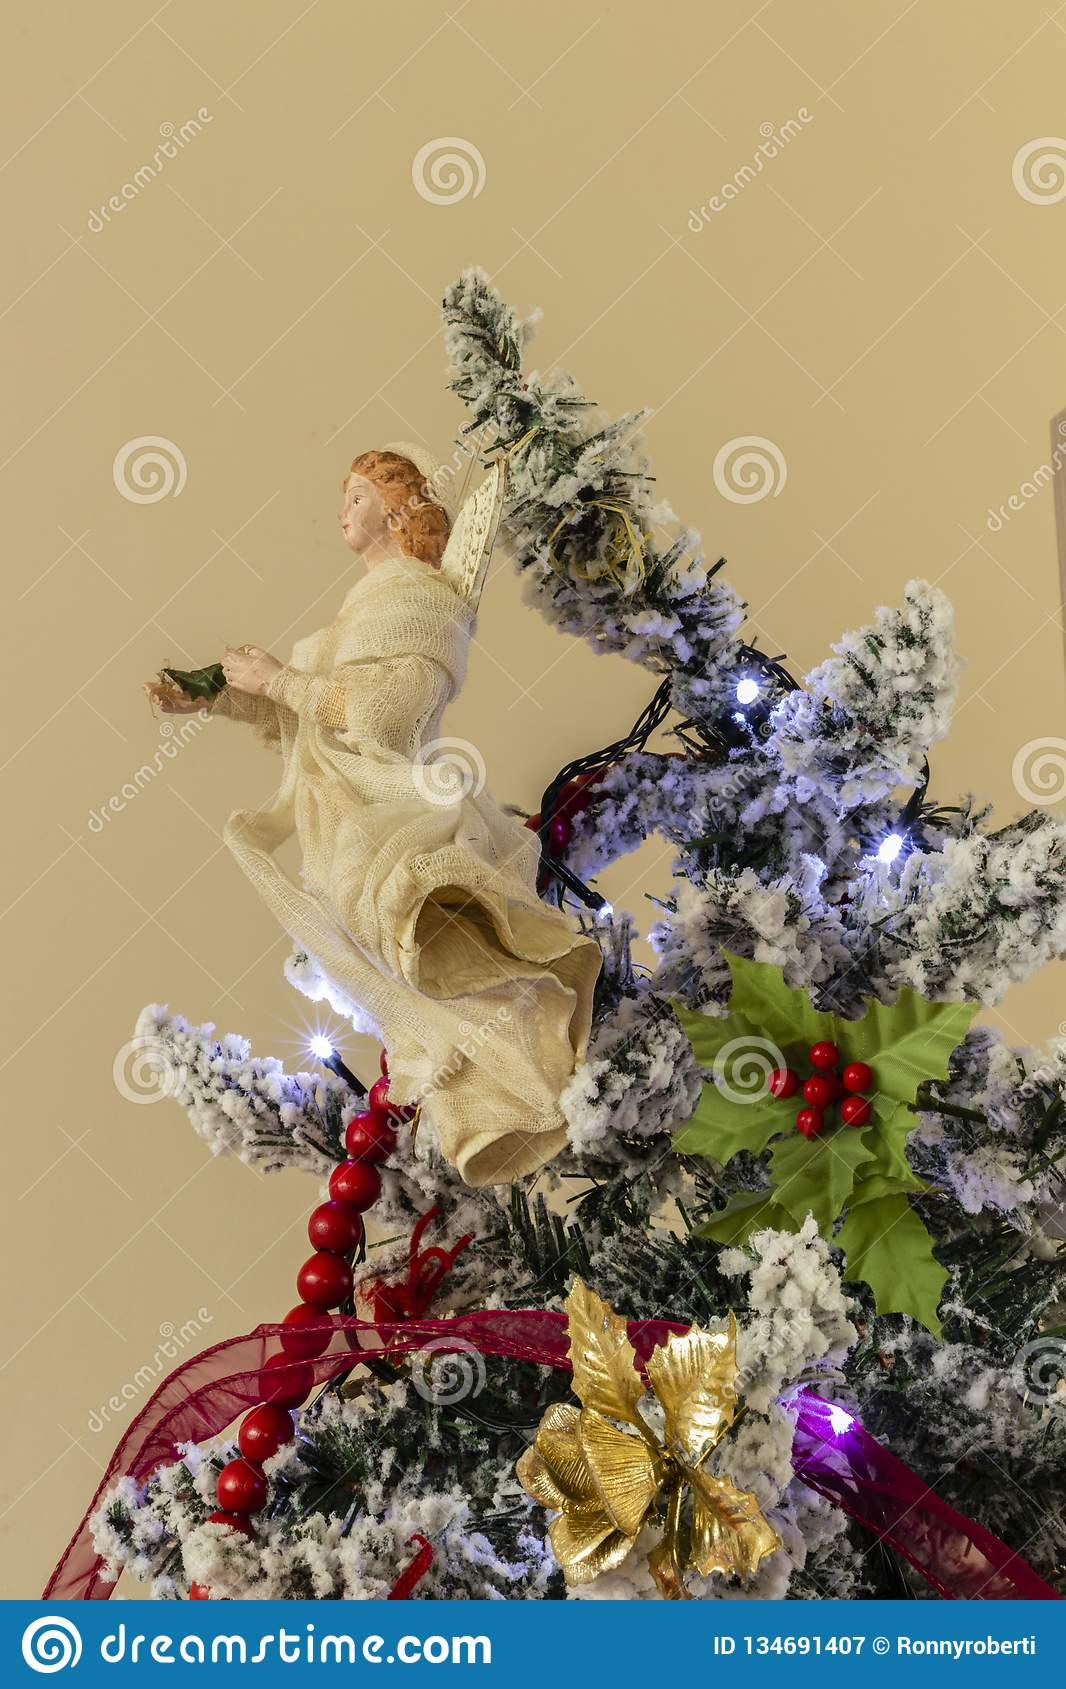 Christmas Tree In The House Stock Image Image of family